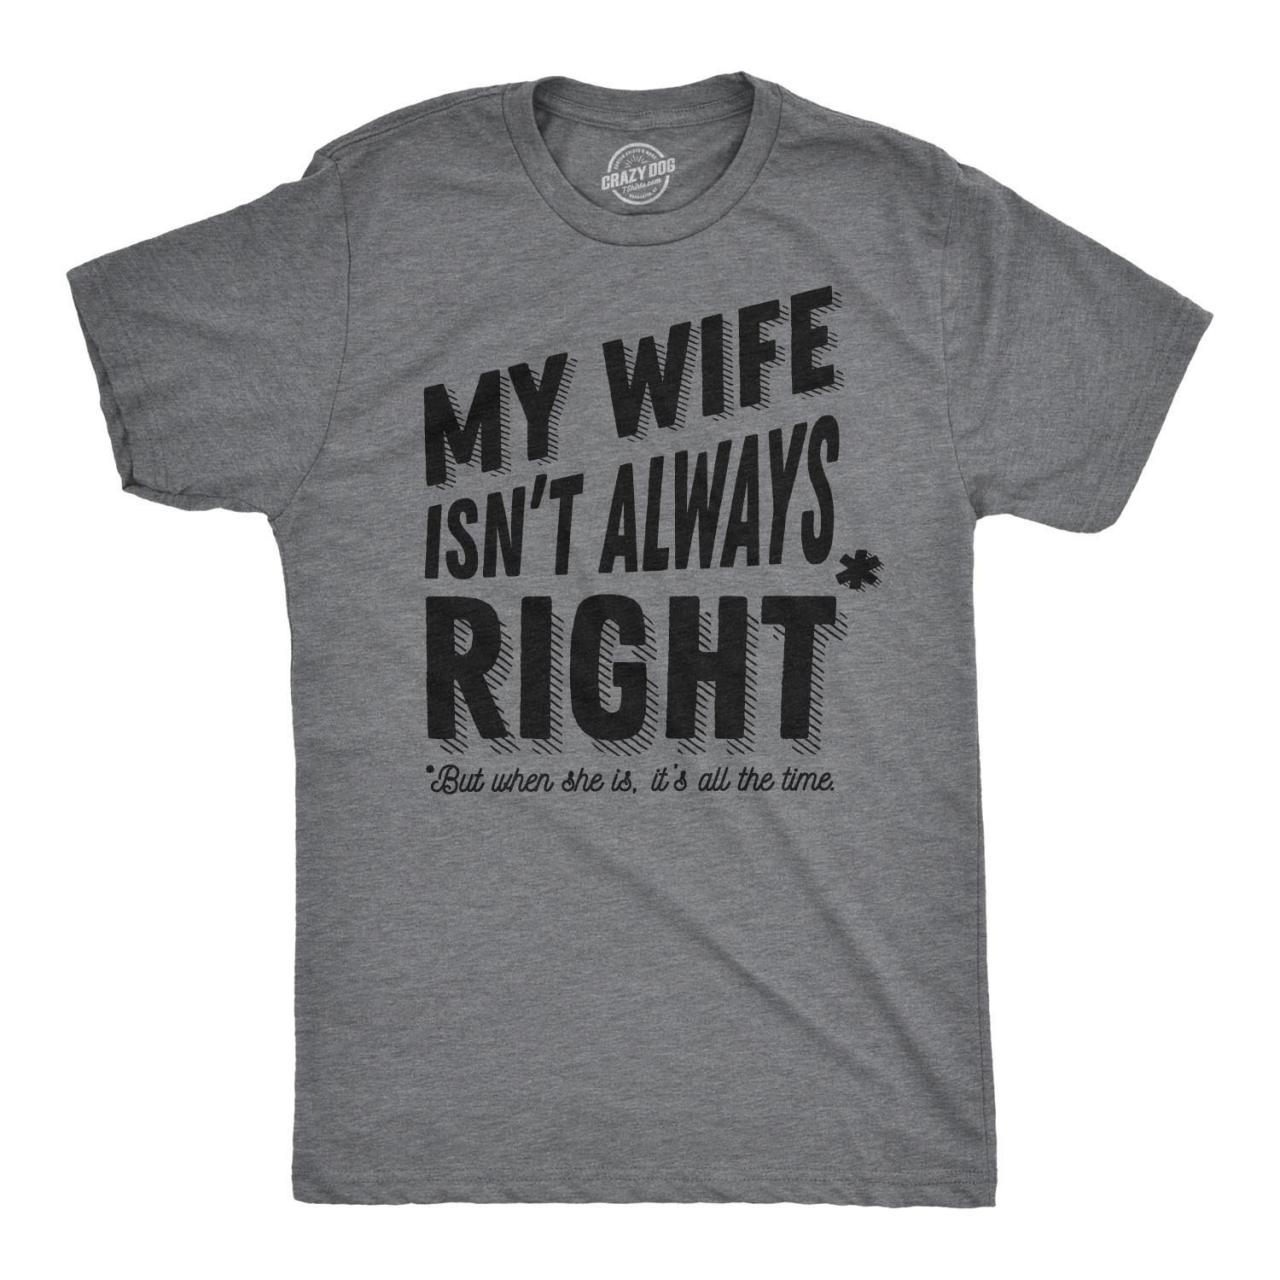 Bossy Wife Shirt, My Wife Isnt Always Right When She Its All The Time Mens Tshirt, Sarcastic Tshirts, Funny Mens TShirt, Anniversary Gift